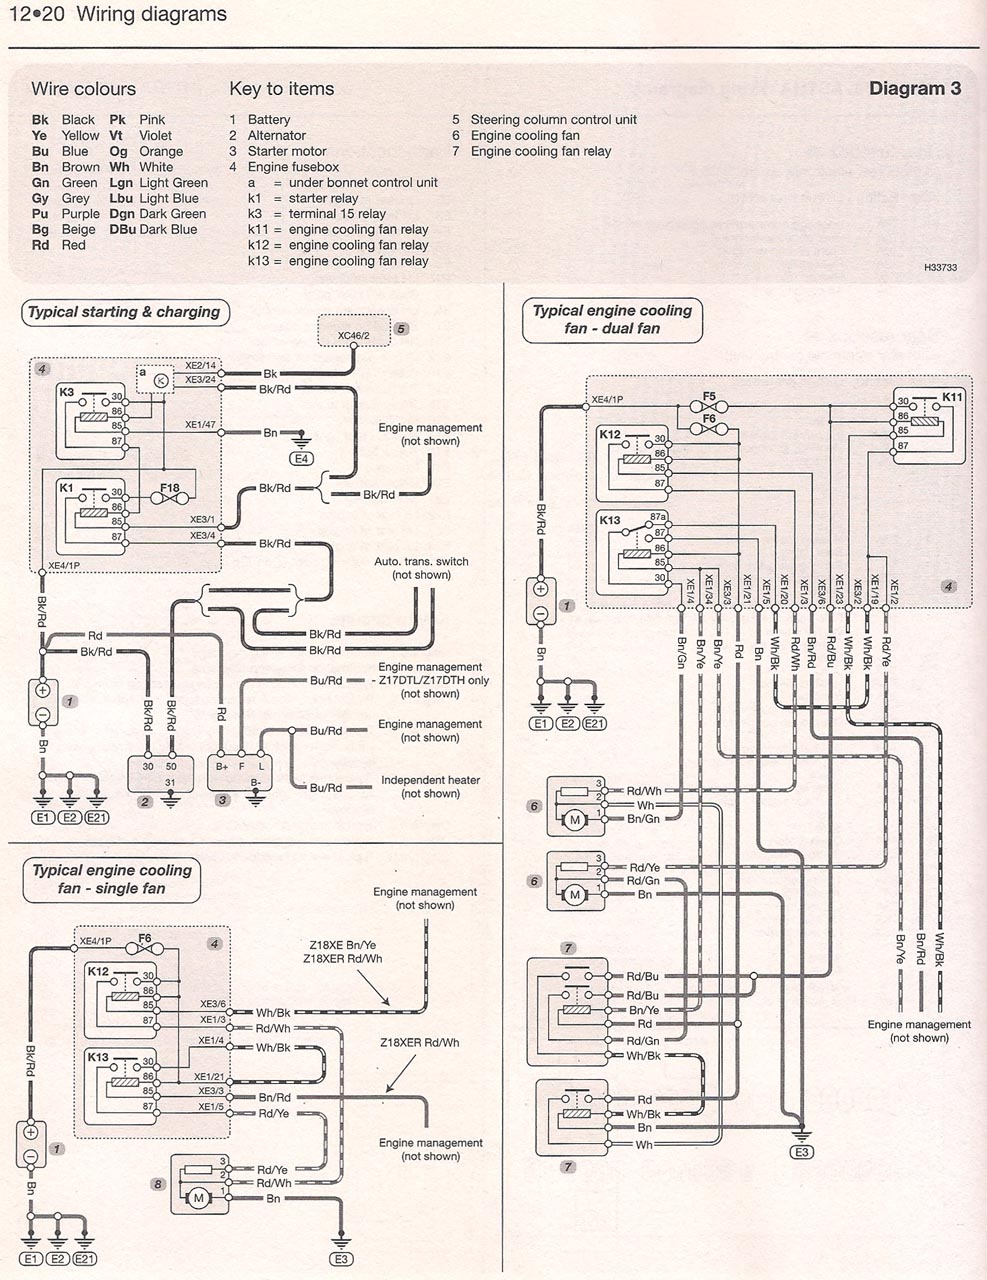 h3a astra h vxr wiring diagram vauxhall astra wiring diagram pdf at edmiracle.co